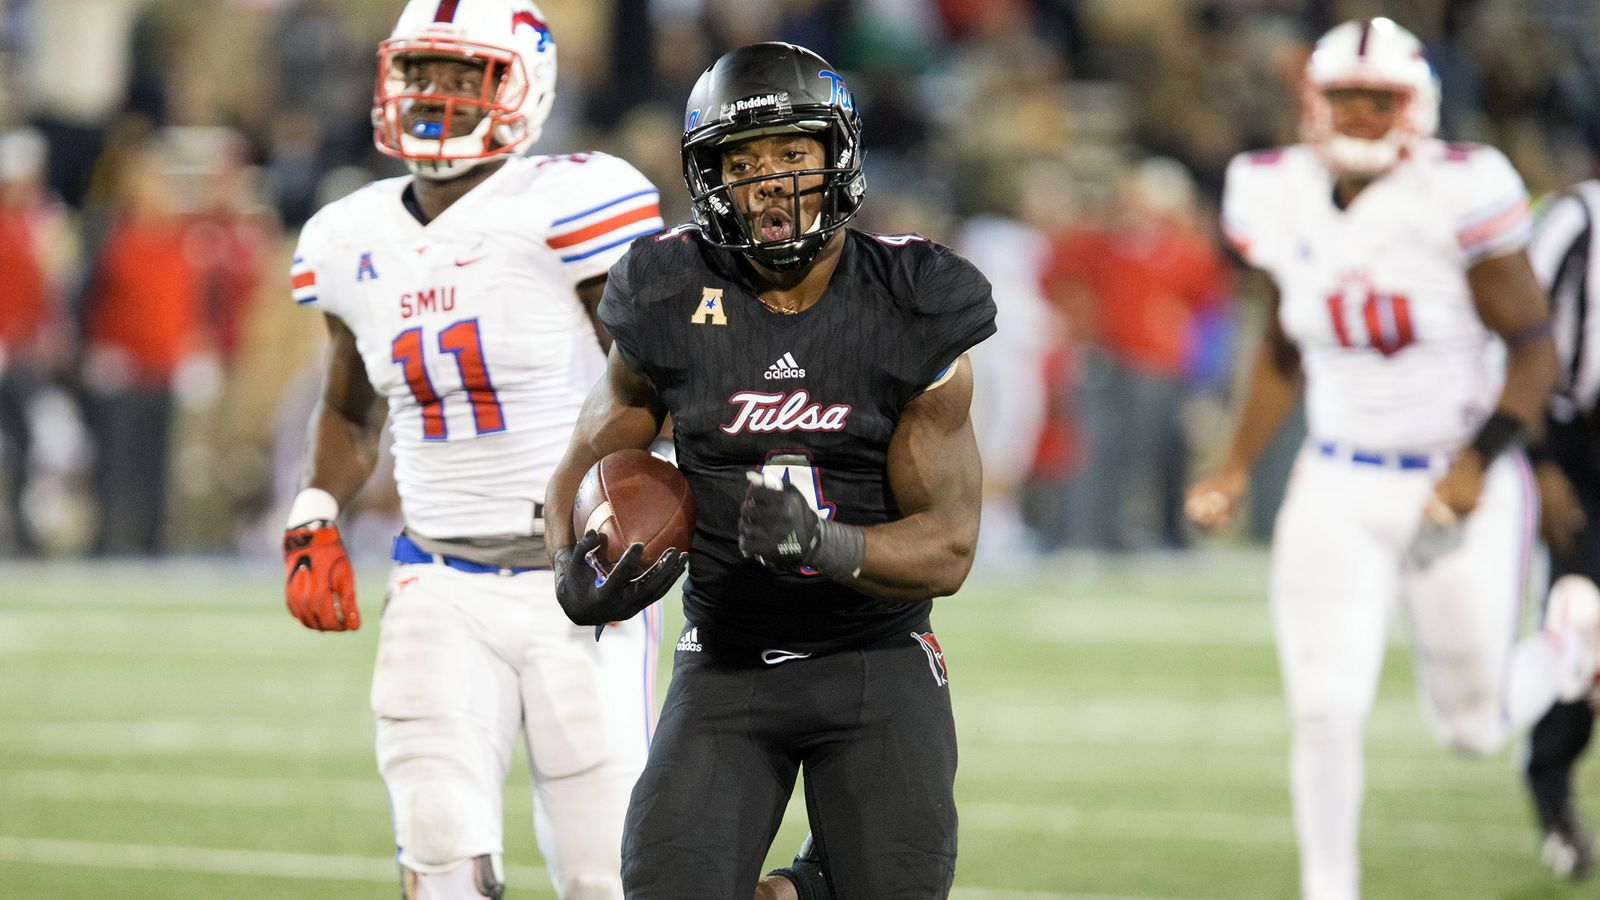 Tulsa Football 2017 Aac Champs If This Offense Is Truly